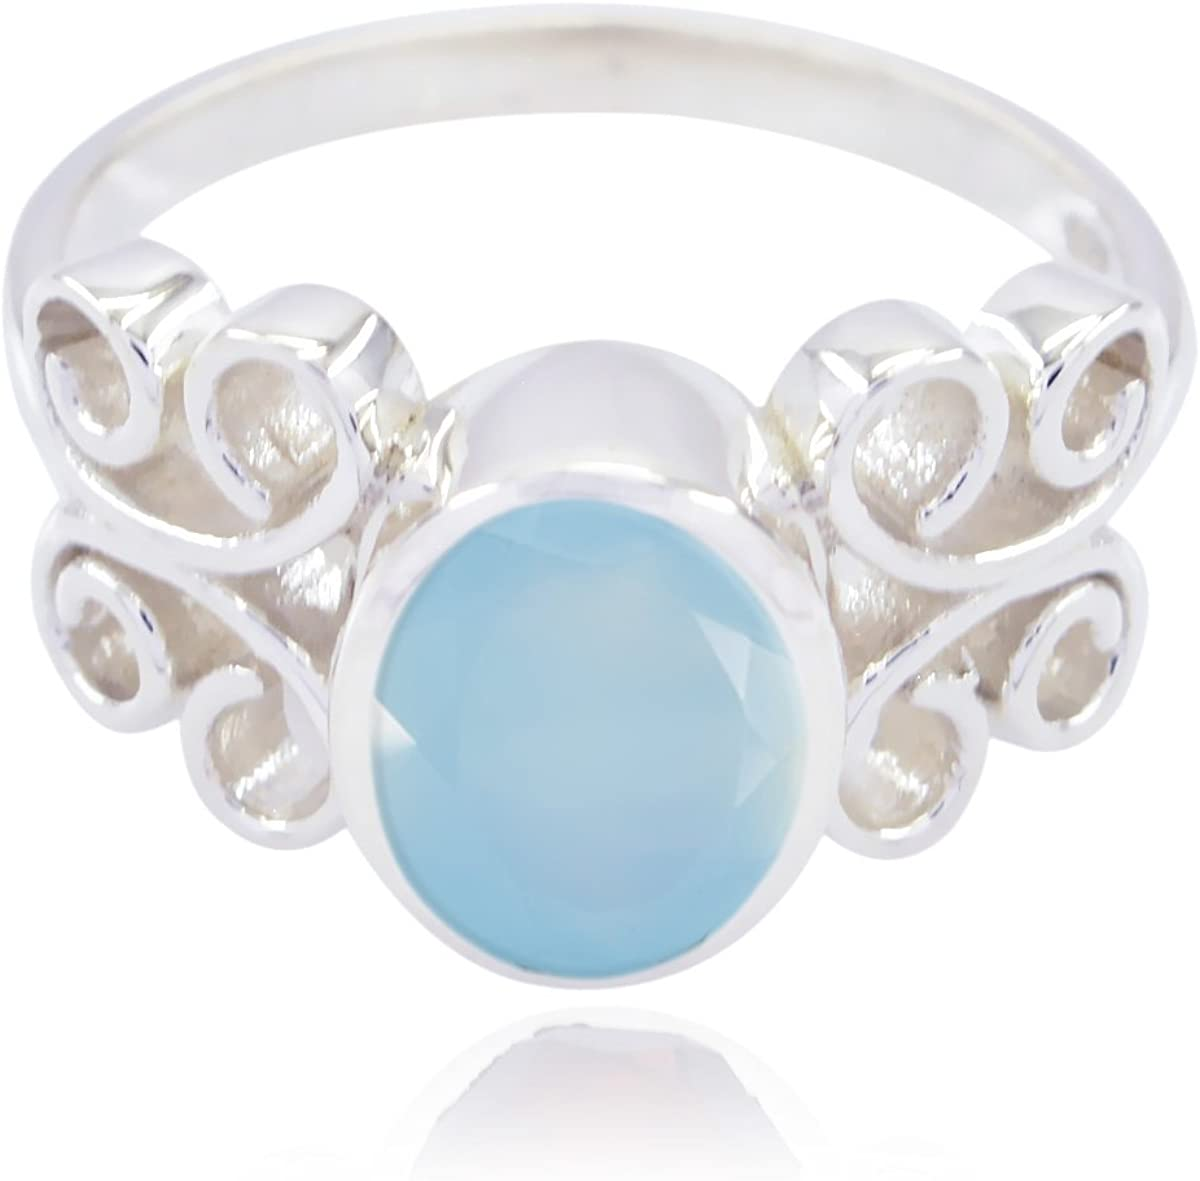 Nice Gemstone Oval Faceted Chalcedonys Ring Fashion Blue Chalcedonys Nice Gemstone Ring ledies Jewelry Most Selling Items Gift for Cyber Monday Bridesmaid Gift